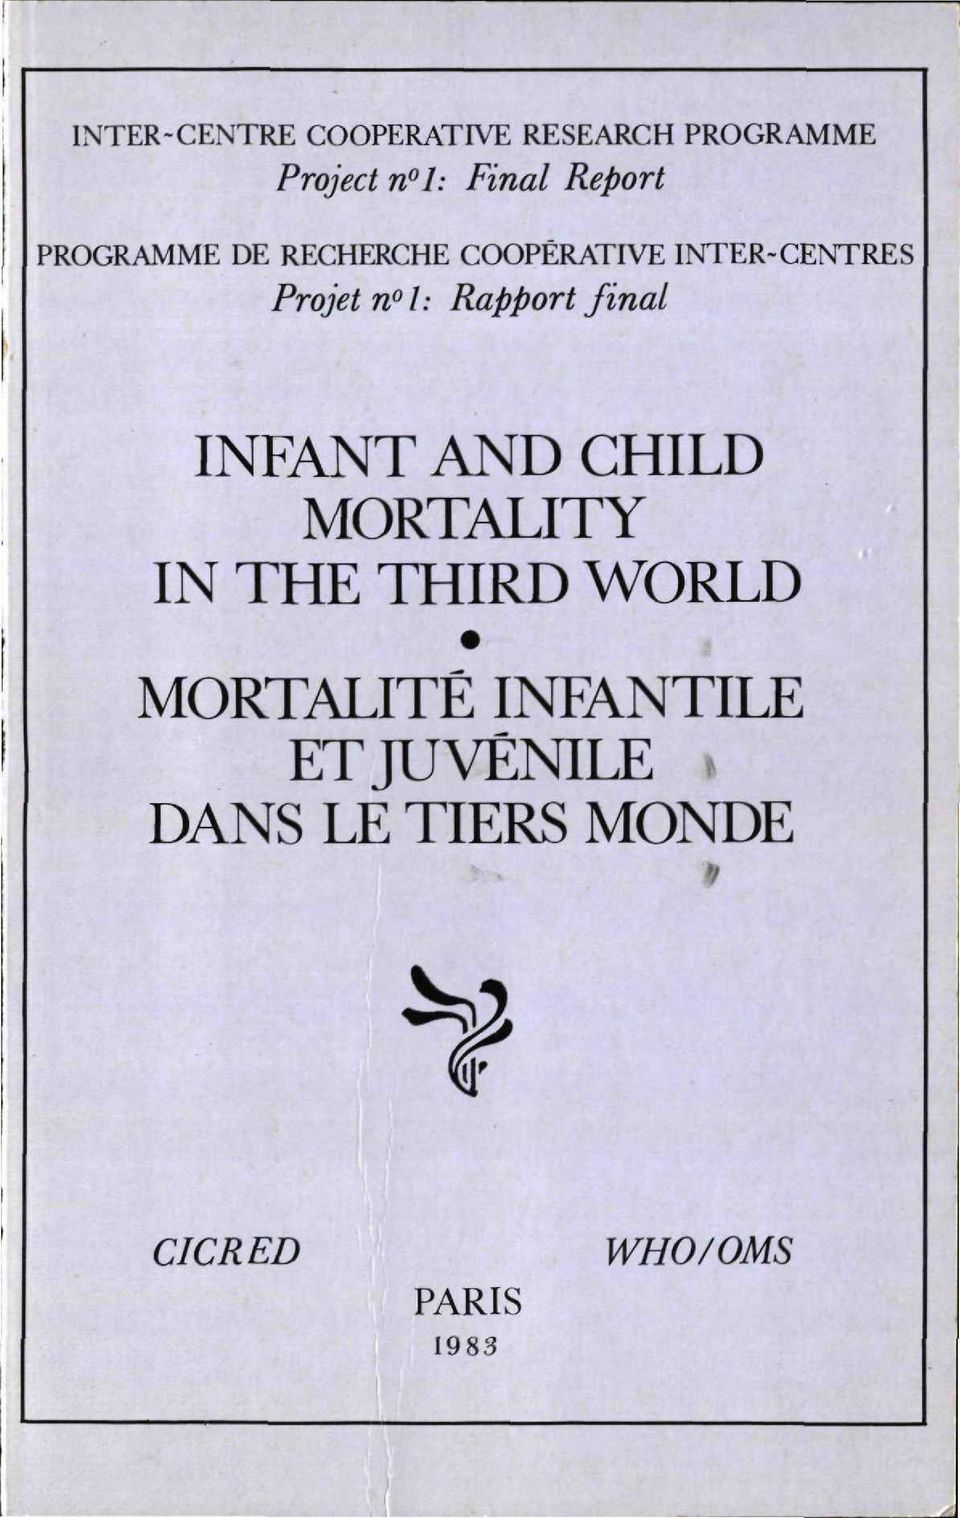 I: Rapport final INFANT AND CHILD MORTALITY IN THE THIRD WORLD